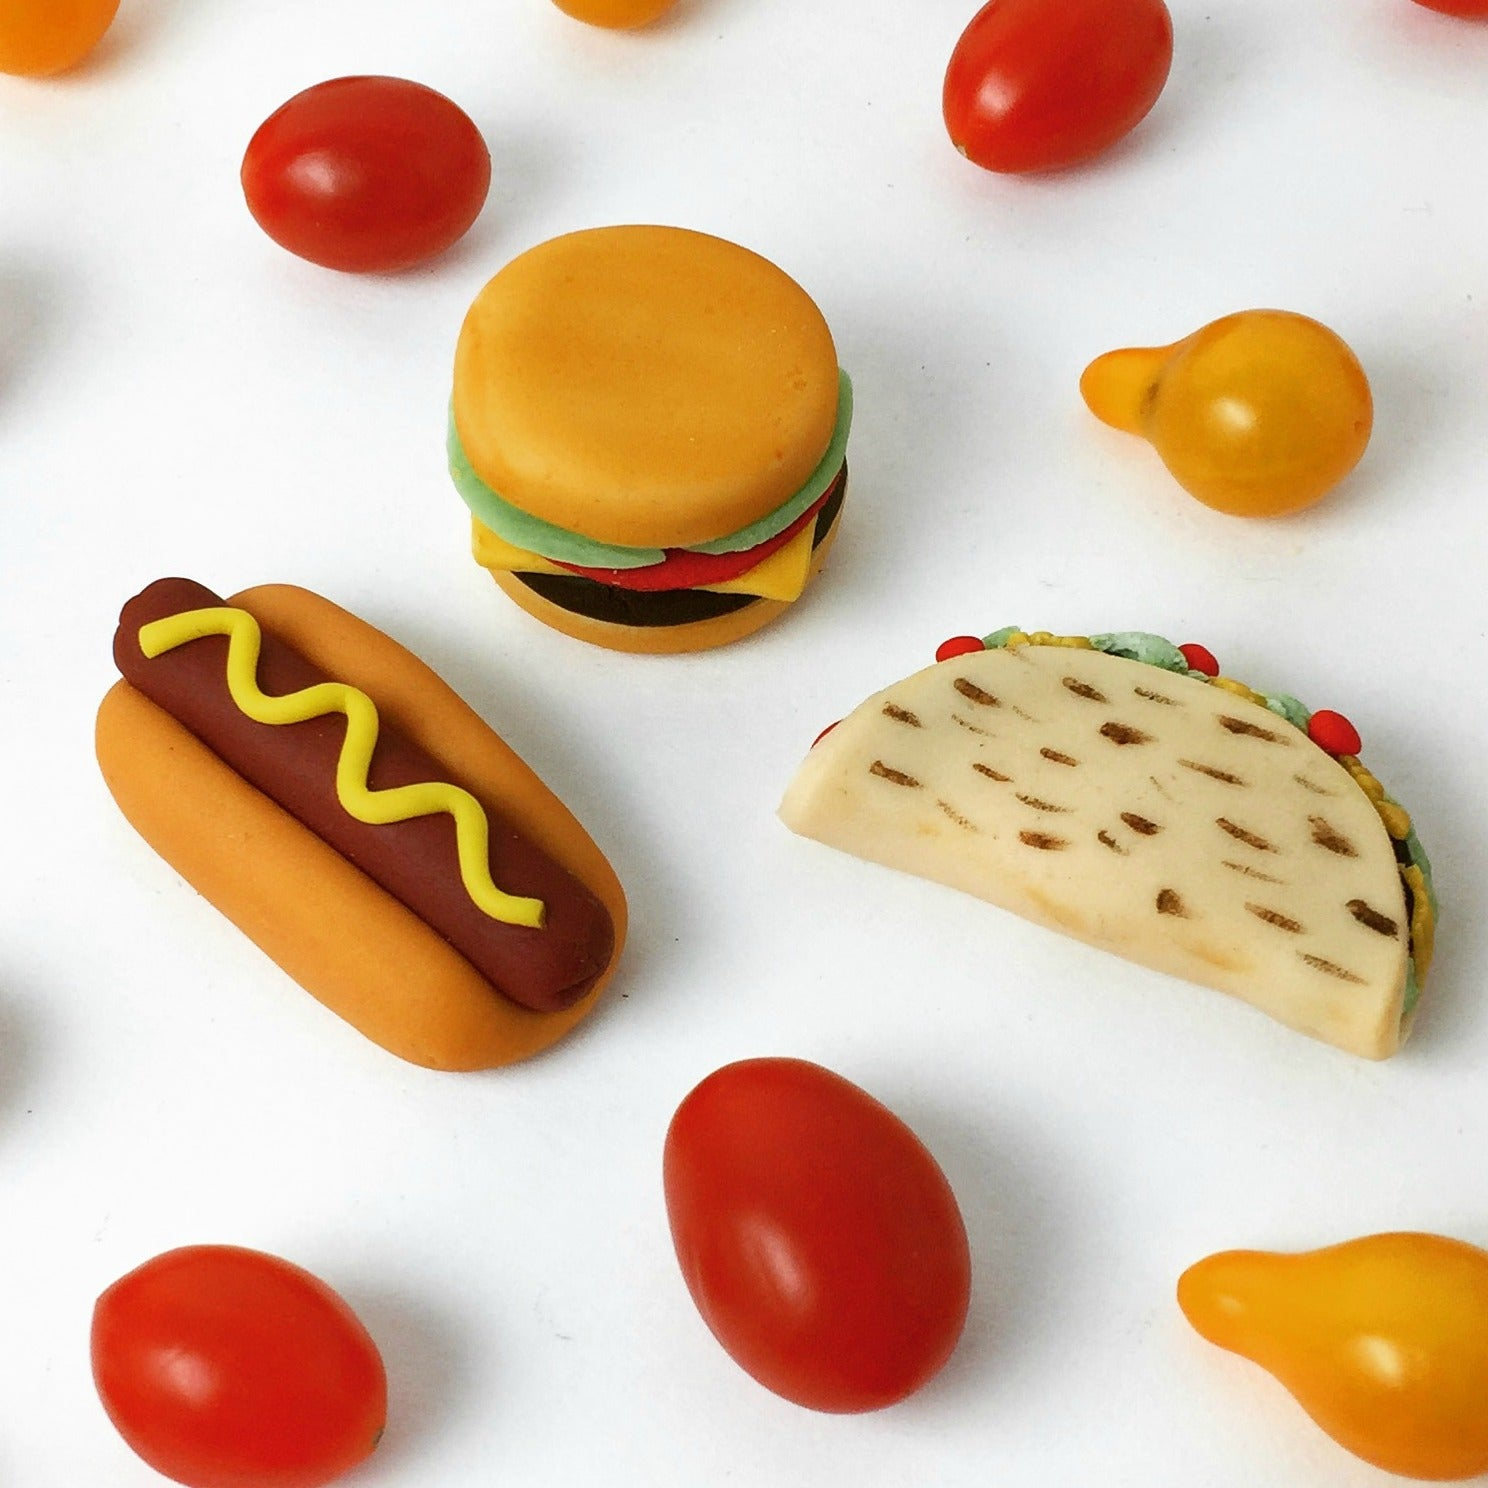 picnic foodie designs with taco, hamburger and hot dog marzipan candy sculpture treats